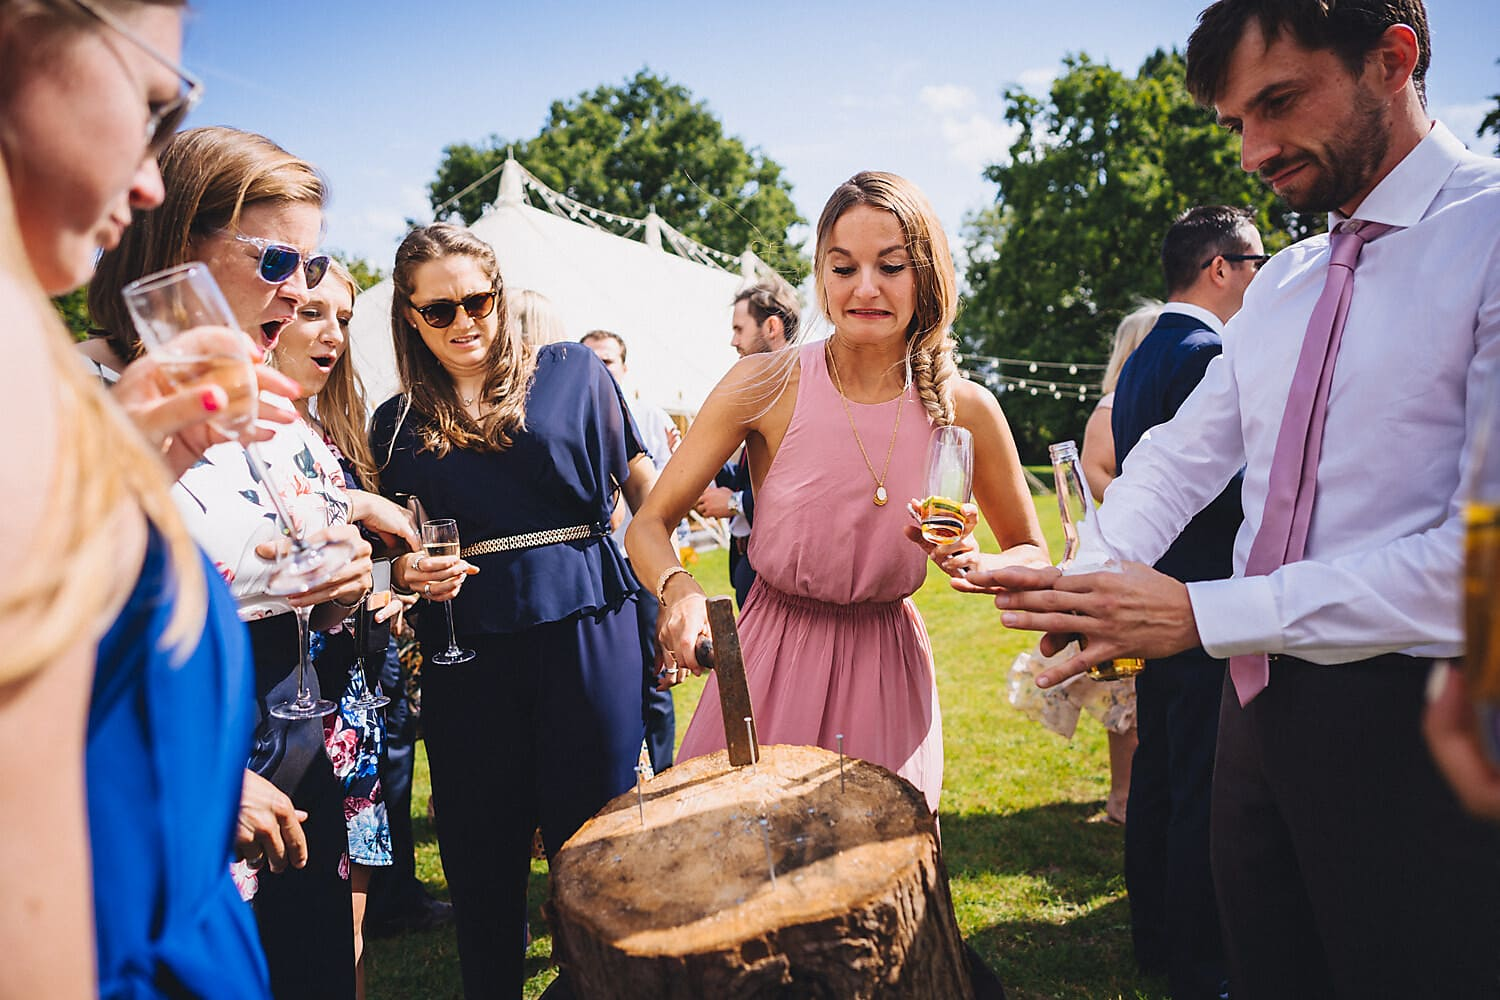 Wedding guests react as a bridesmaid tries to hammer a nail into a log